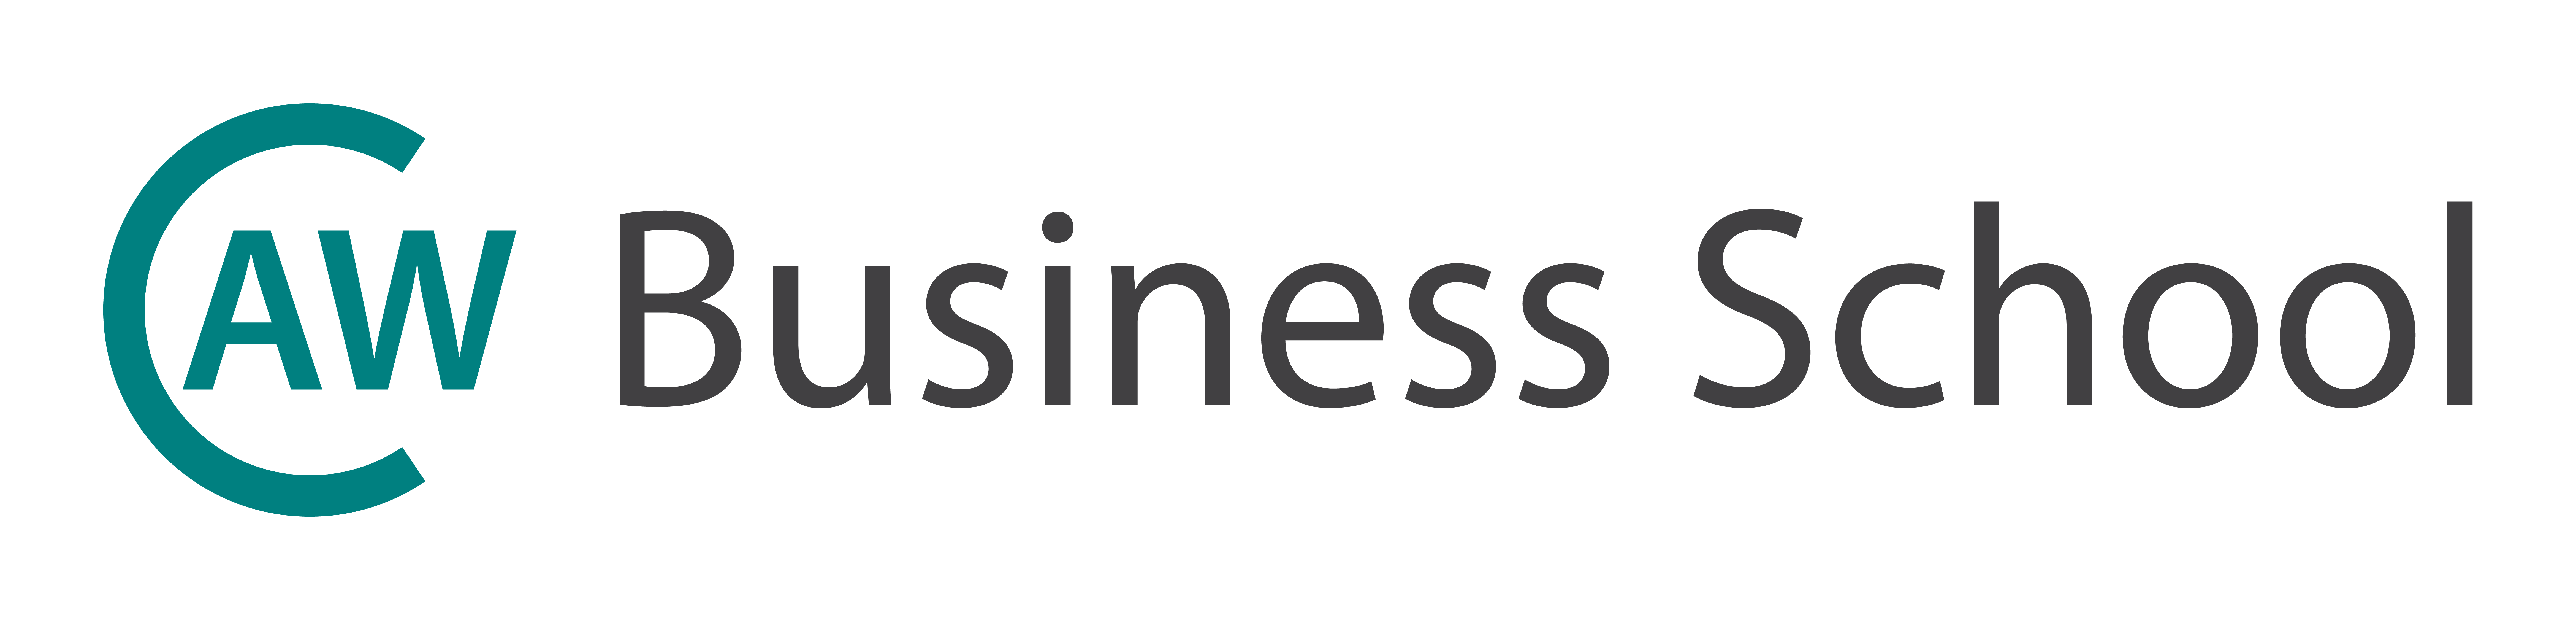 The CAW Business School Logo